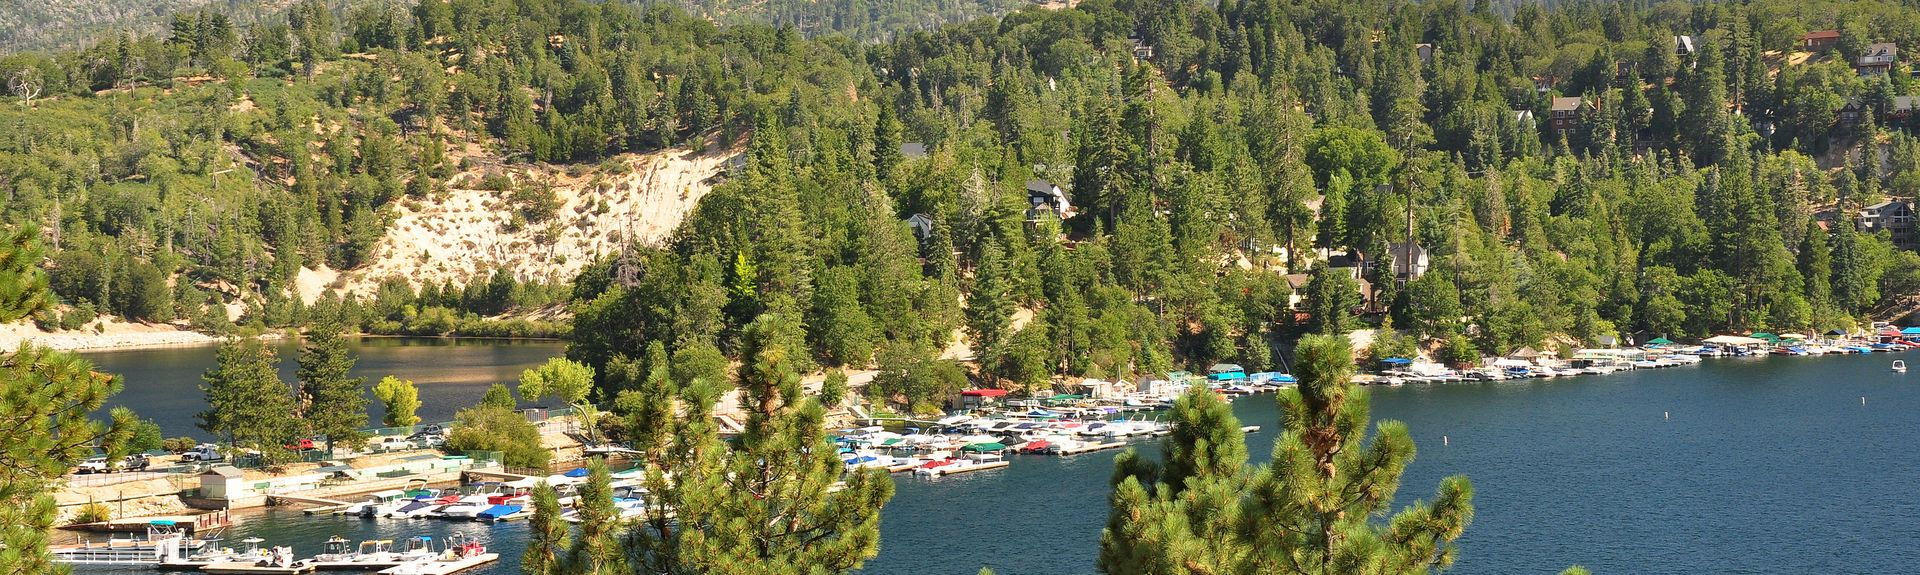 Lake Arrowhead, California, United States of America